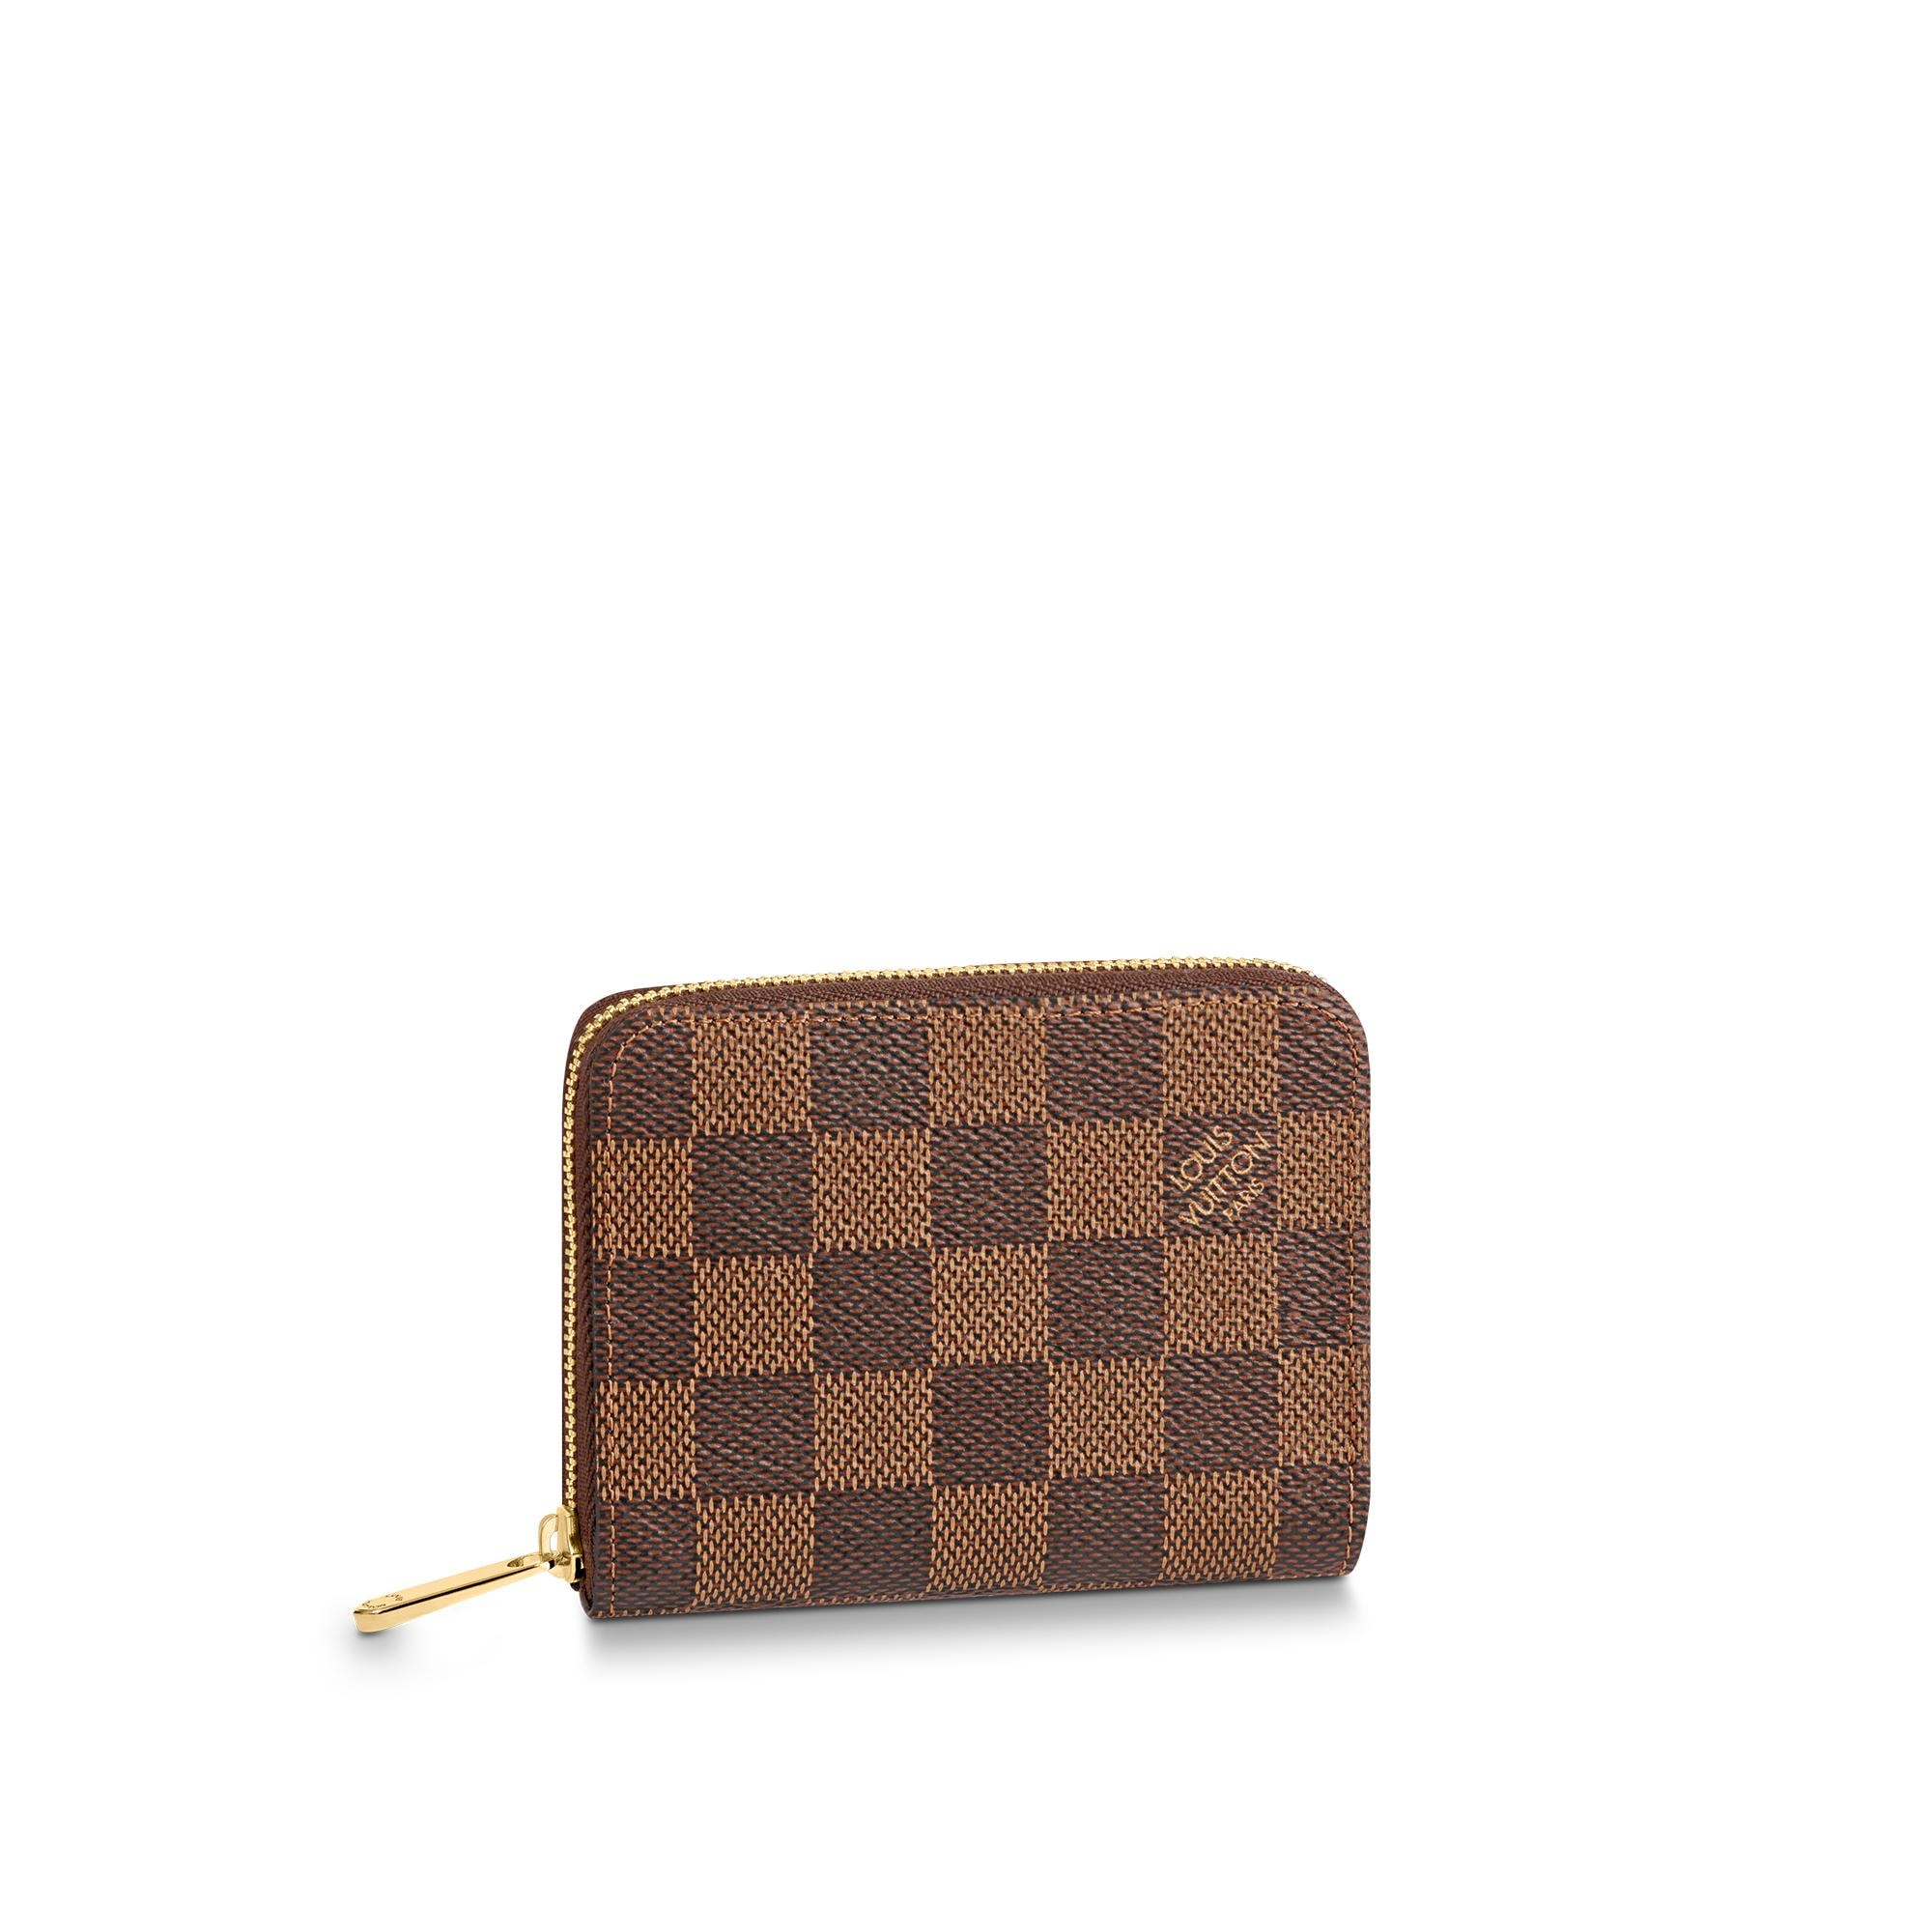 Le Meilleur Zippy Coin Purse Damier Ebene Canvas Small Leather Goods Ce Mois Ci